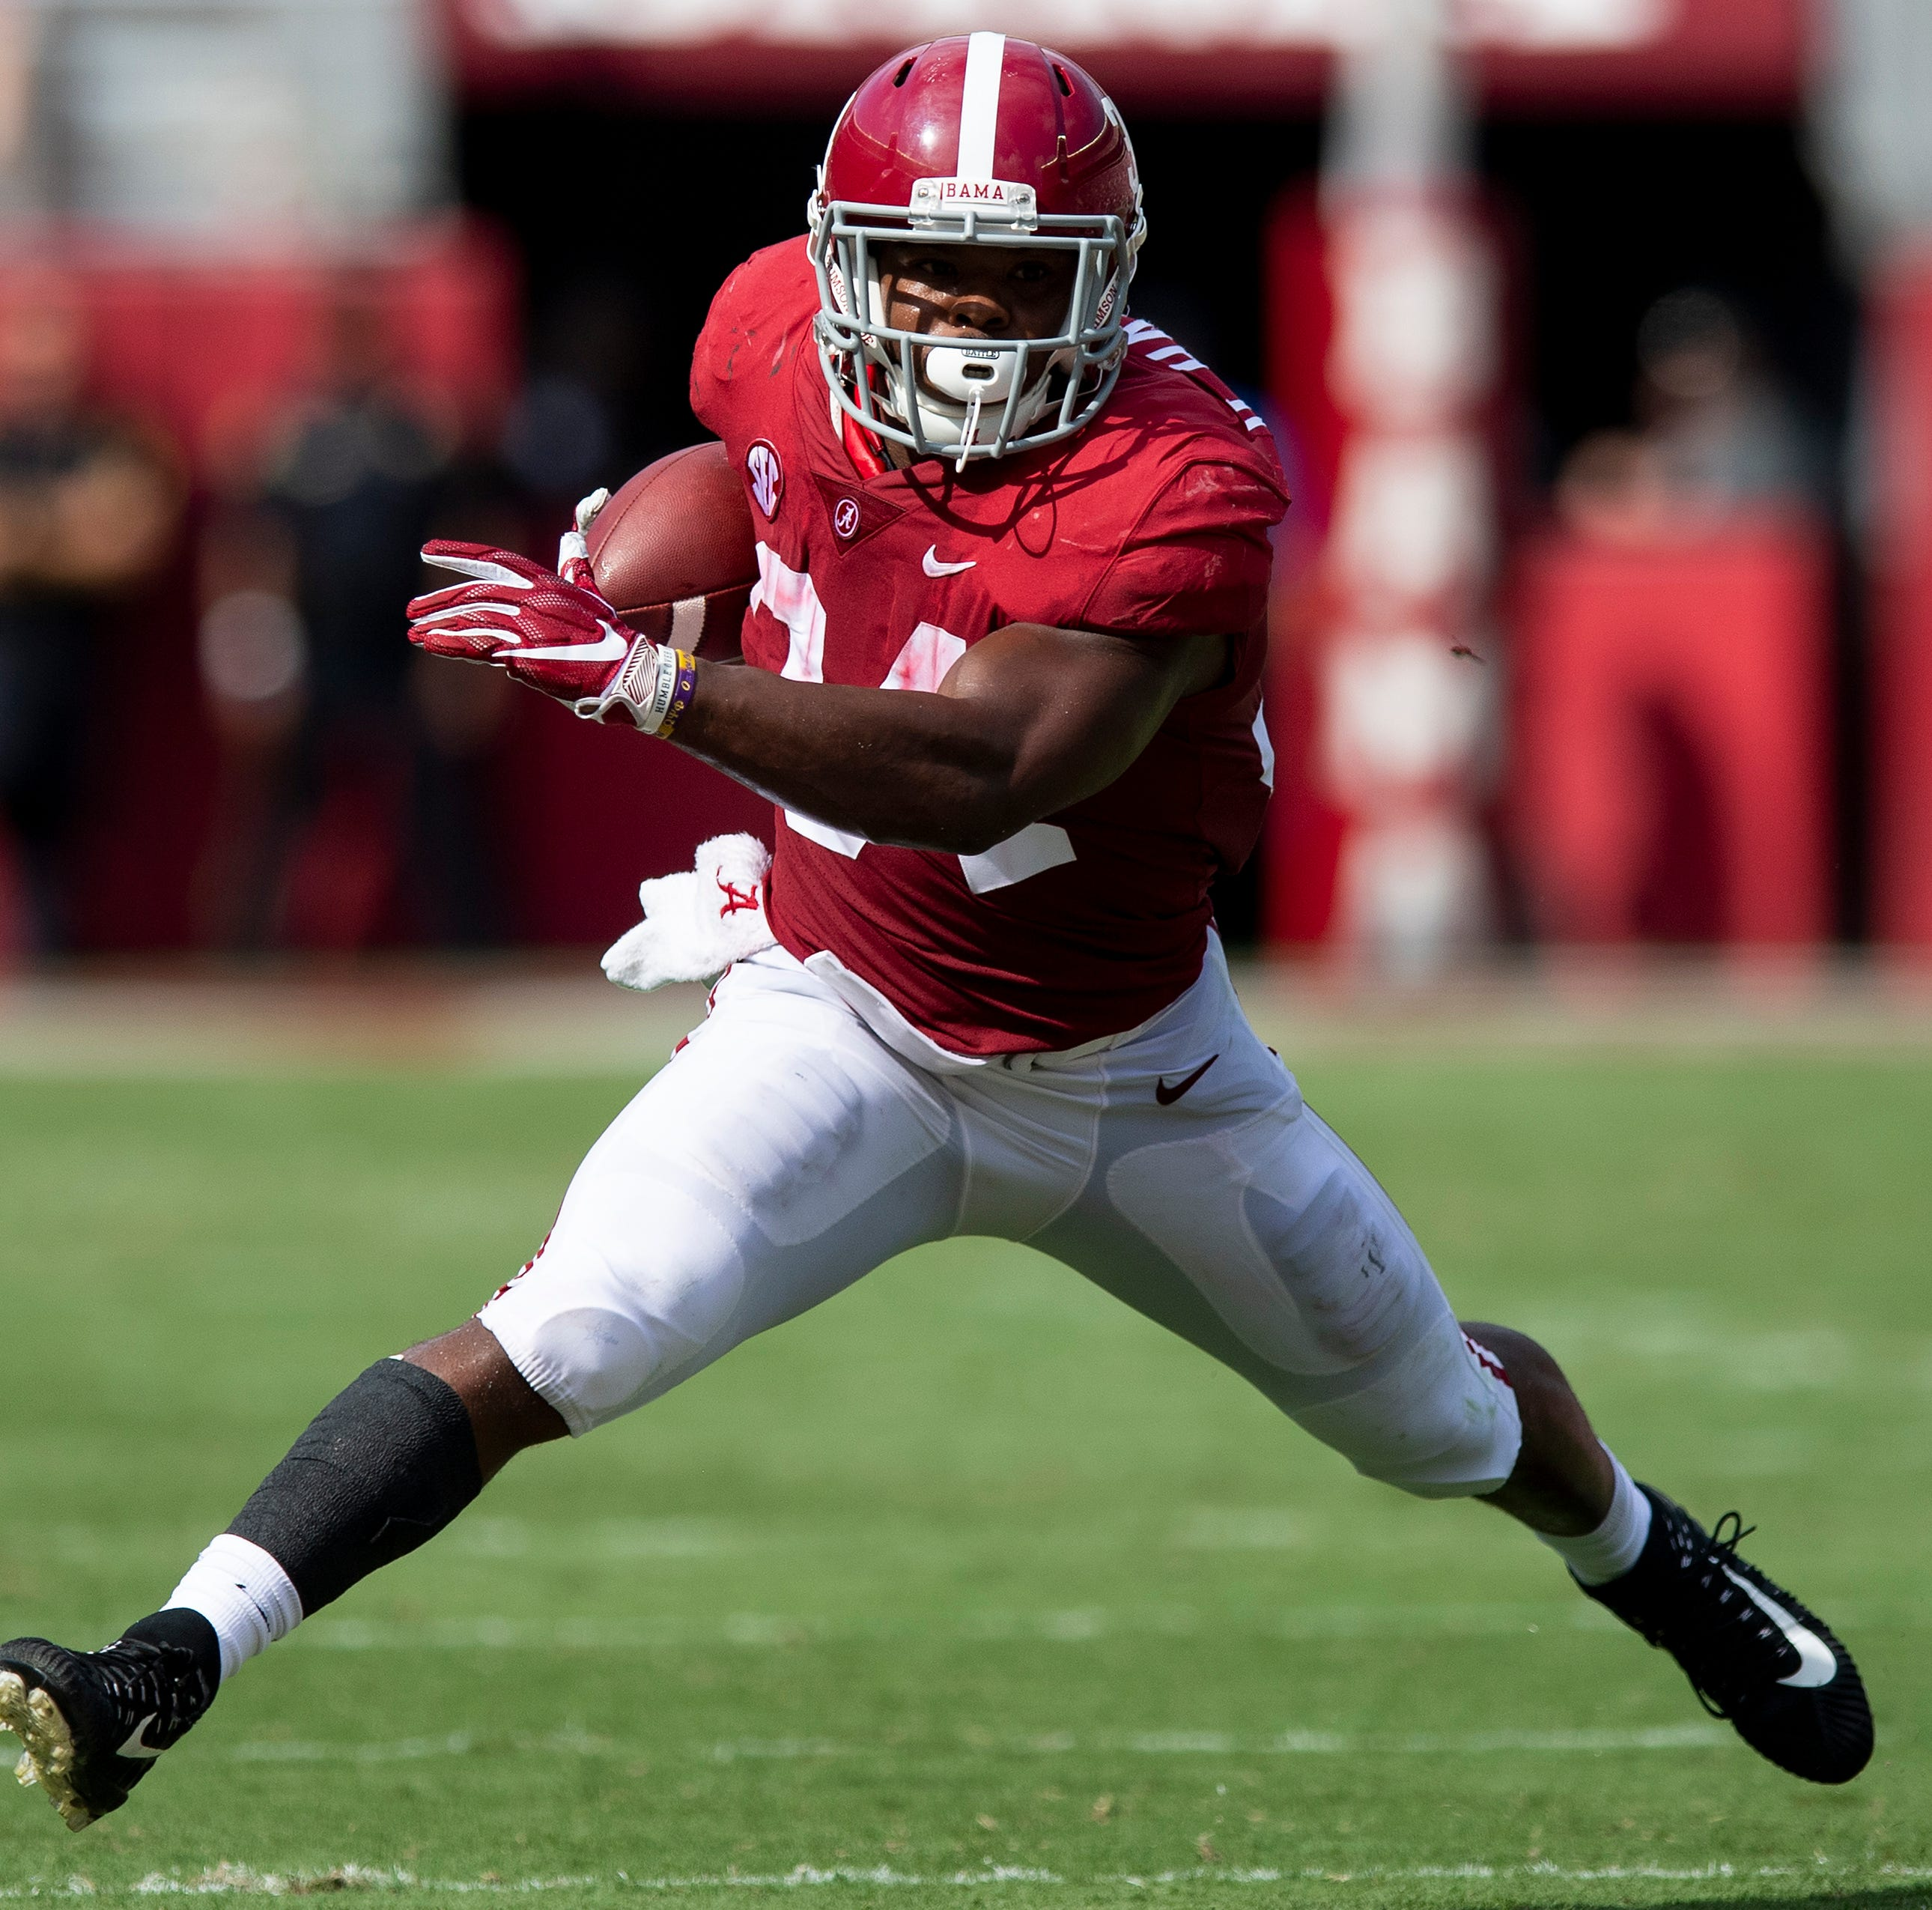 Senior Bowl exec expresses 'disappointment' Alabama RB declined invite